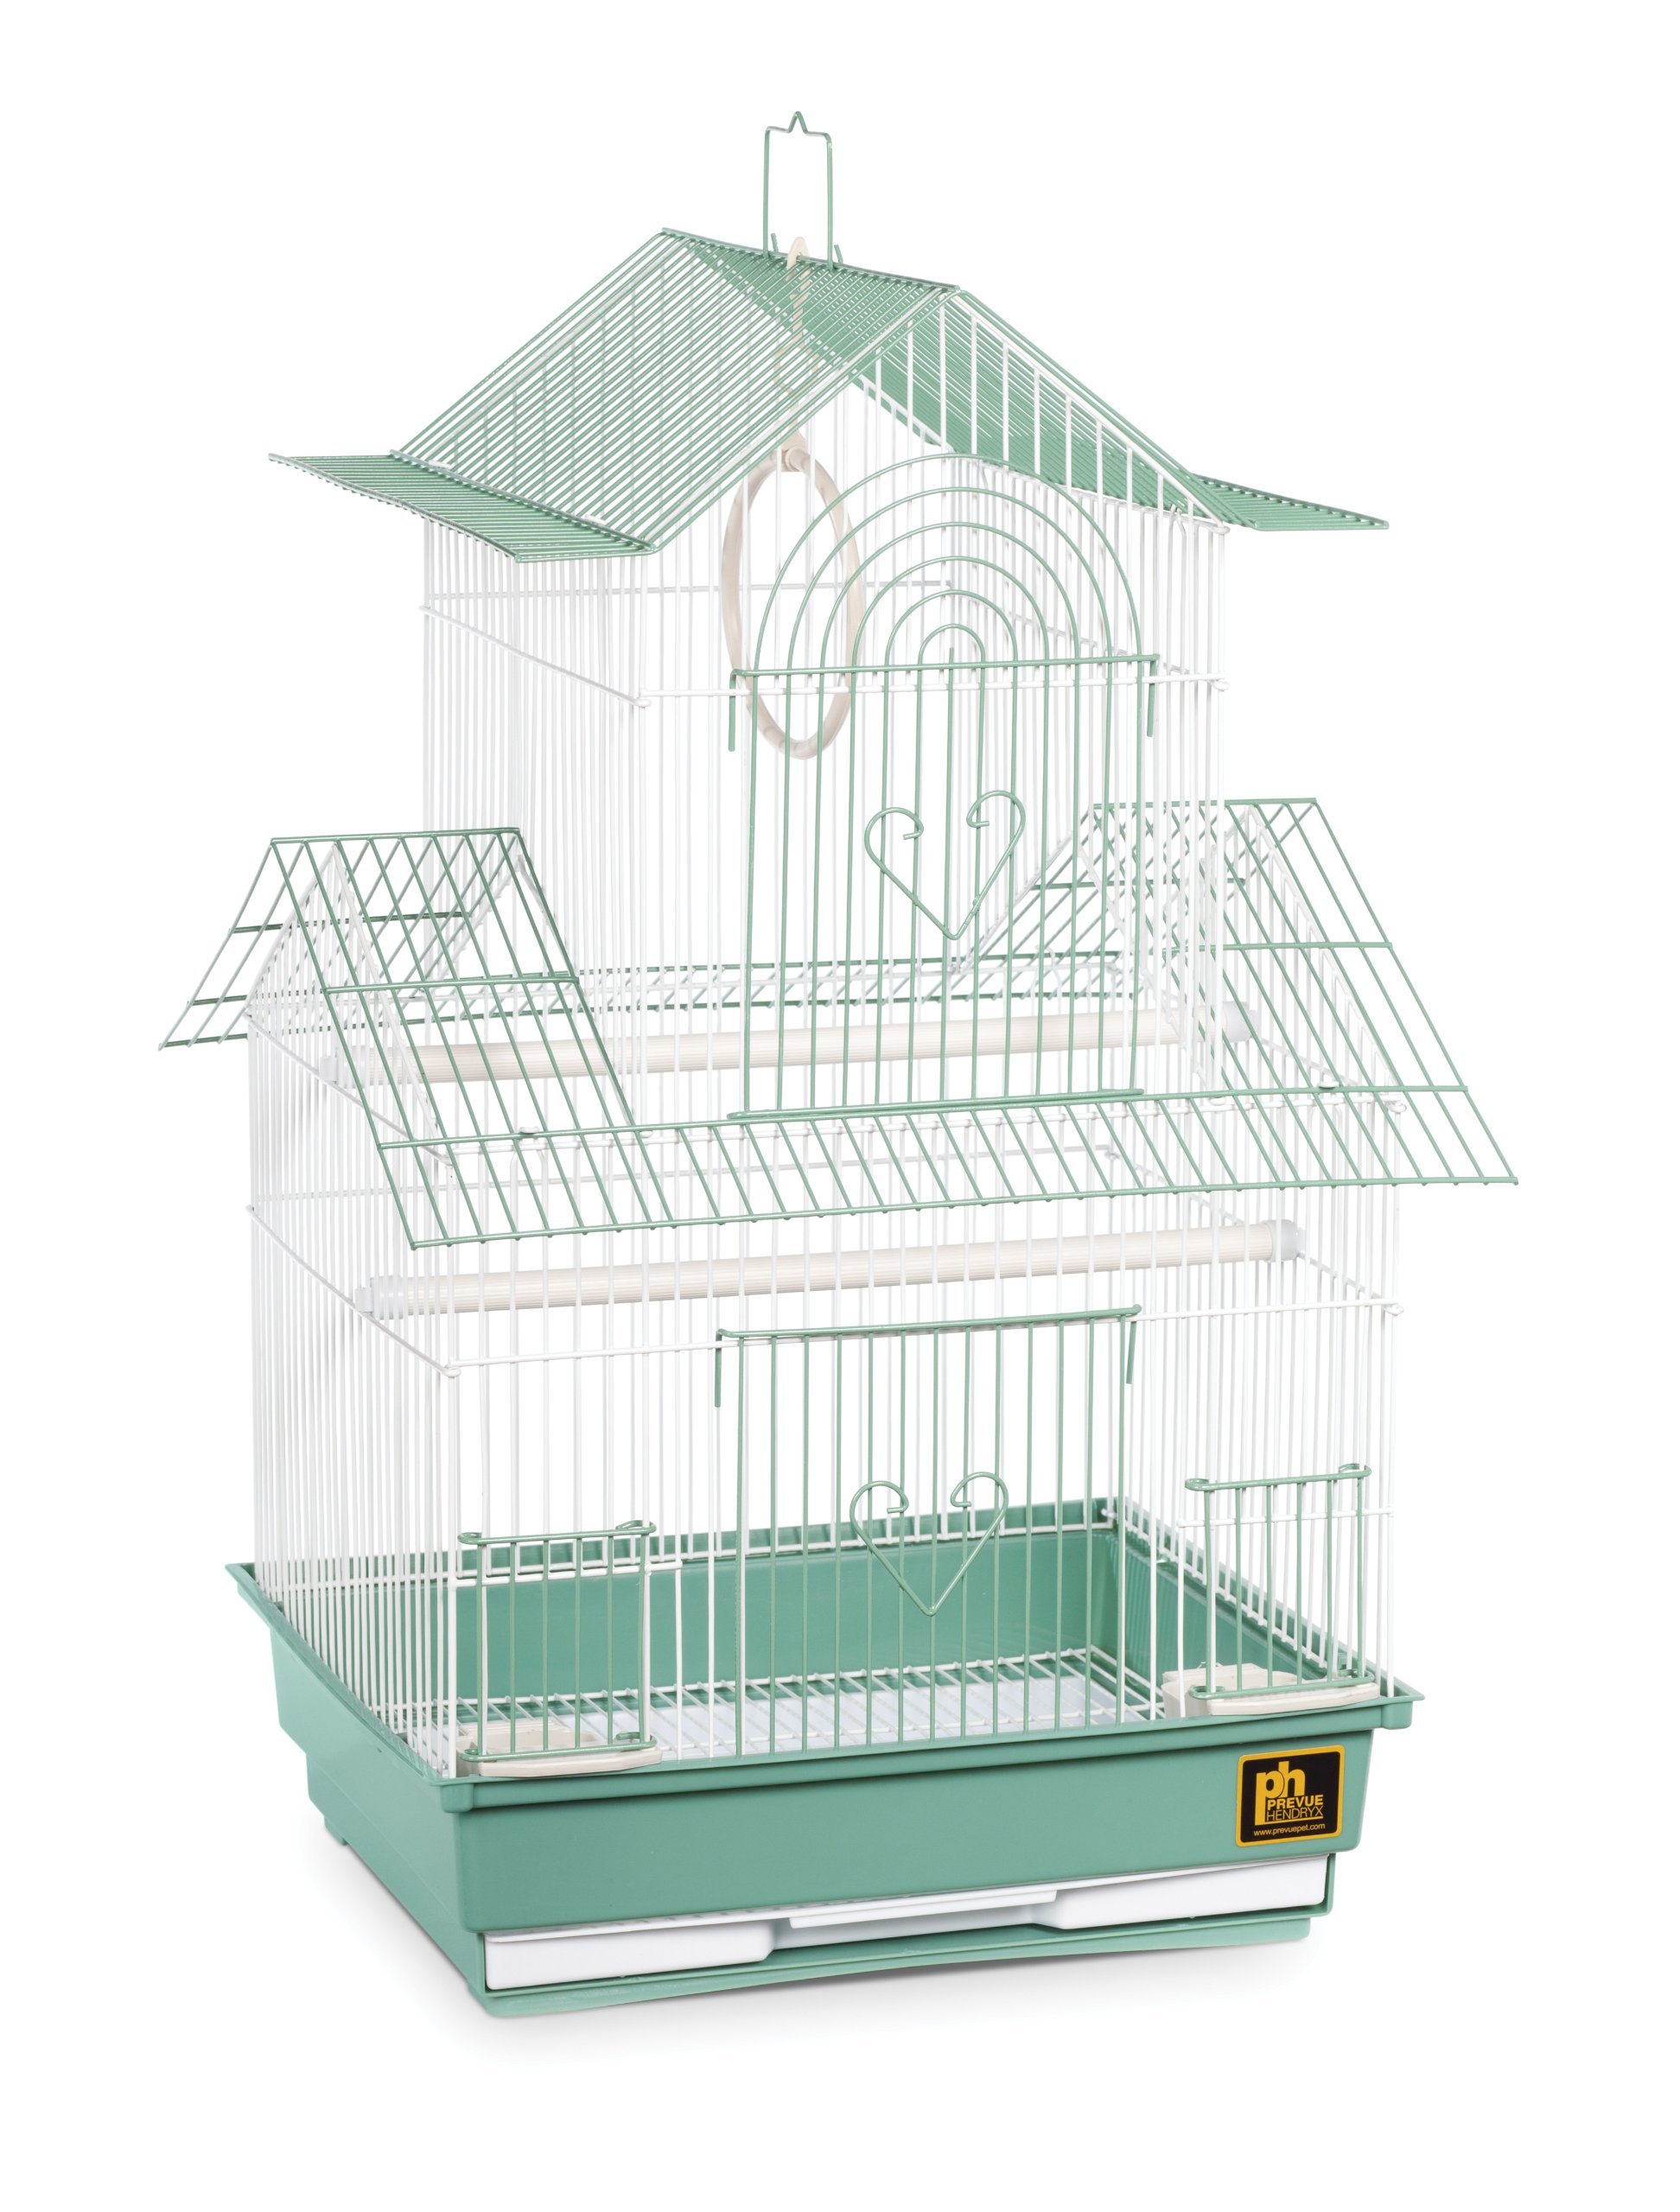 Prevue Hendryx SP1720-4 Shanghai Parakeet Cage, Green and White by Prevue Hendryx